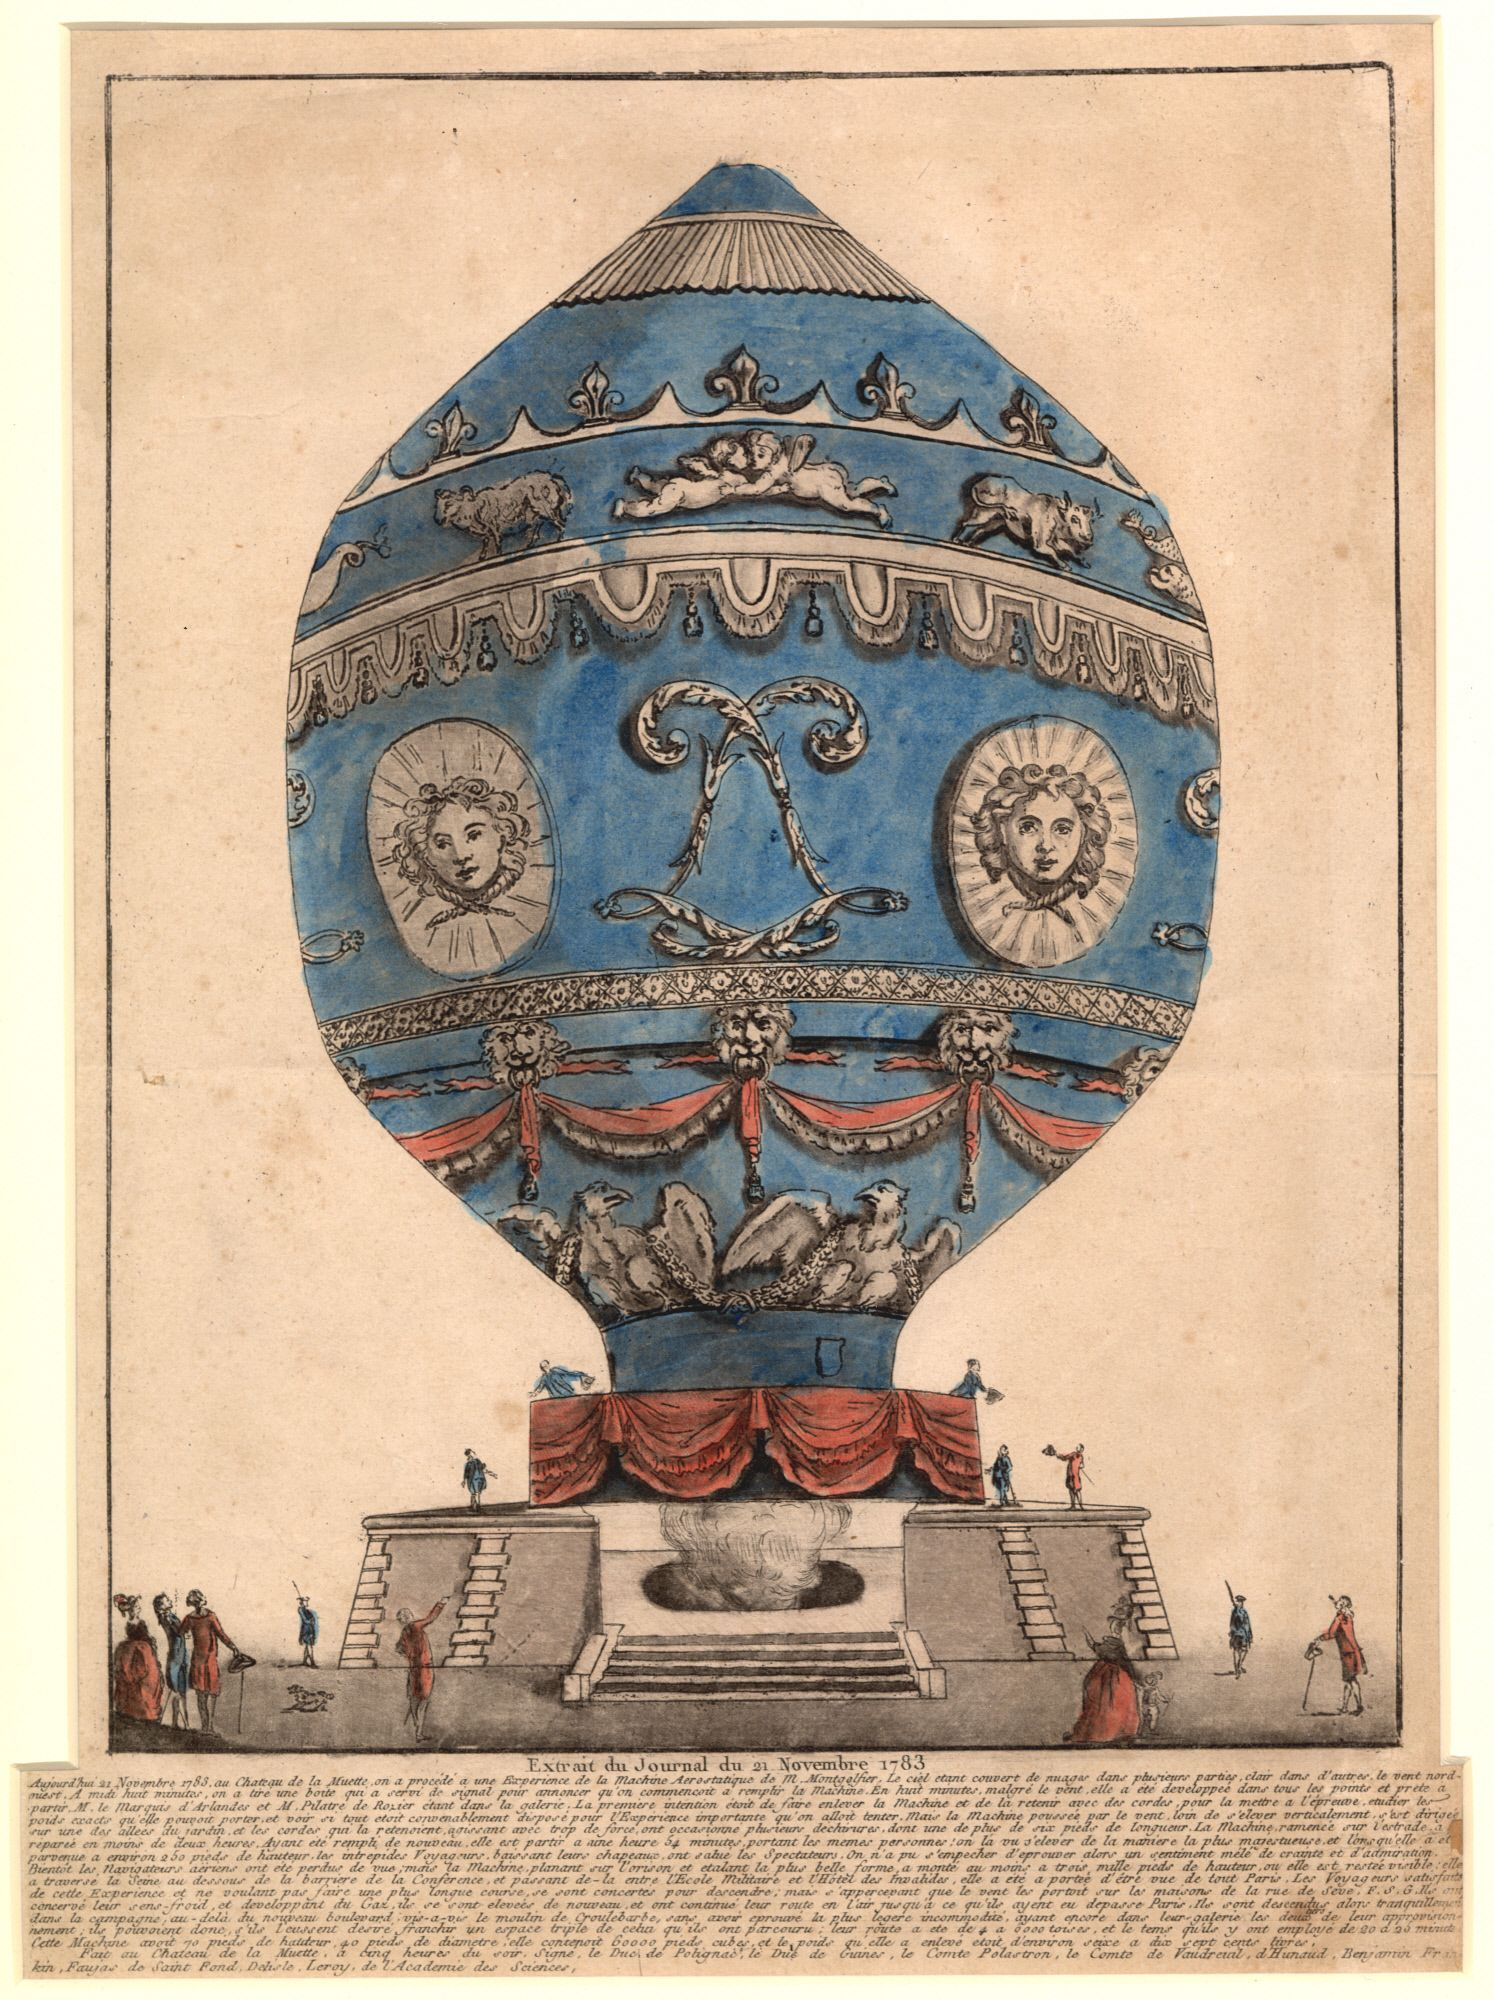 Print depicting Montgolfier balloon in which Pilatre de Rozier and François Laurent, the marquis D'Arlandes, became the first human beings to make a free flight on November 21, 1783. The balloon was launched from the grounds of the Château de la Muette outside Paris. / Hand colored etching on paper, gift of Harry F. Guggenheim